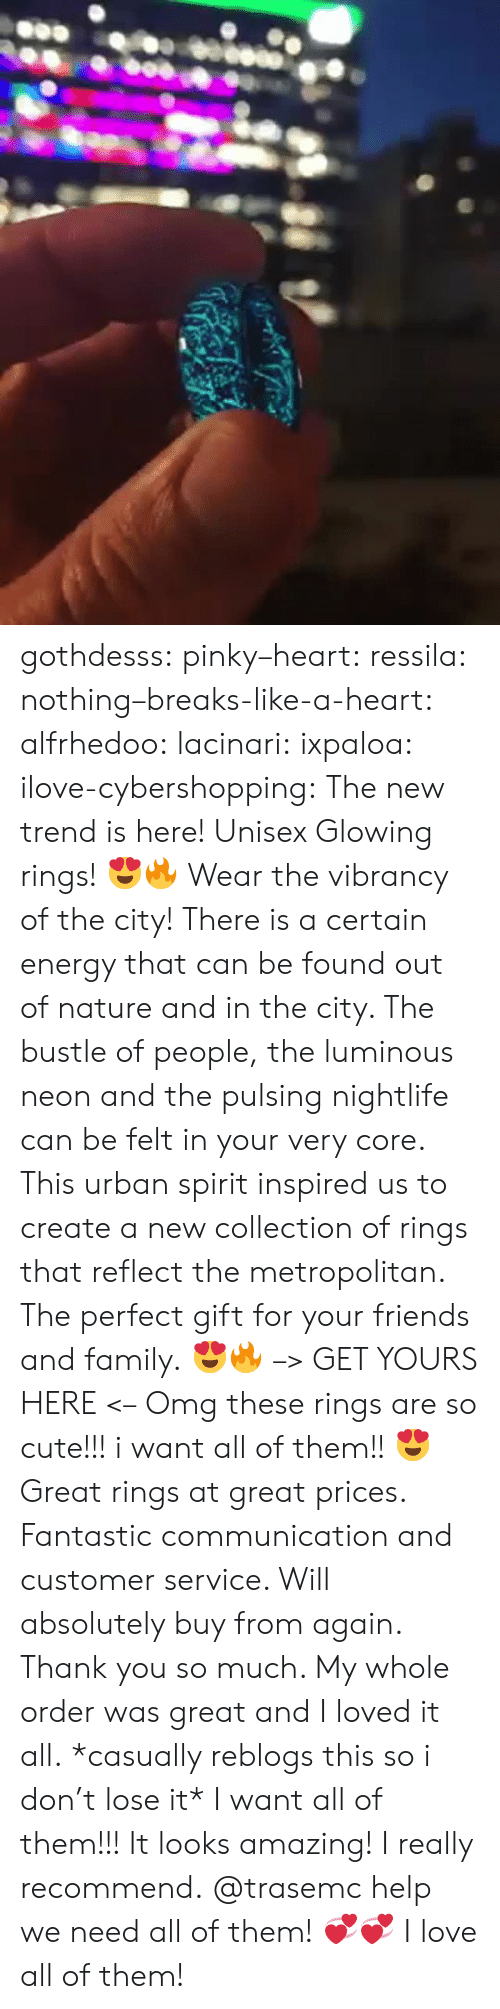 customer service: gothdesss:  pinky–heart: ressila:  nothing–breaks-like-a-heart:  alfrhedoo:  lacinari:  ixpaloa:  ilove-cybershopping:  The new trend is here! Unisex Glowing rings! 😍🔥 Wear the vibrancy of the city! There is a certain energy that can be found out of nature and in the city. The bustle of people, the luminous neon and the pulsing nightlife can be felt in your very core. This urban spirit inspired us to create a new collection of rings that reflect the metropolitan. The perfect gift for your friends and family. 😍🔥 –> GET YOURS HERE <–  Omg these rings are so cute!!! i want all of them!! 😍  Great rings at great prices. Fantastic communication and customer service. Will absolutely buy from again. Thank you so much. My whole order was great and I loved it all.  *casually reblogs this so i don't lose it*  I want all of them!!!  It looks amazing! I really recommend.  @trasemc help we need all of them! 💞💞  I love all of them!